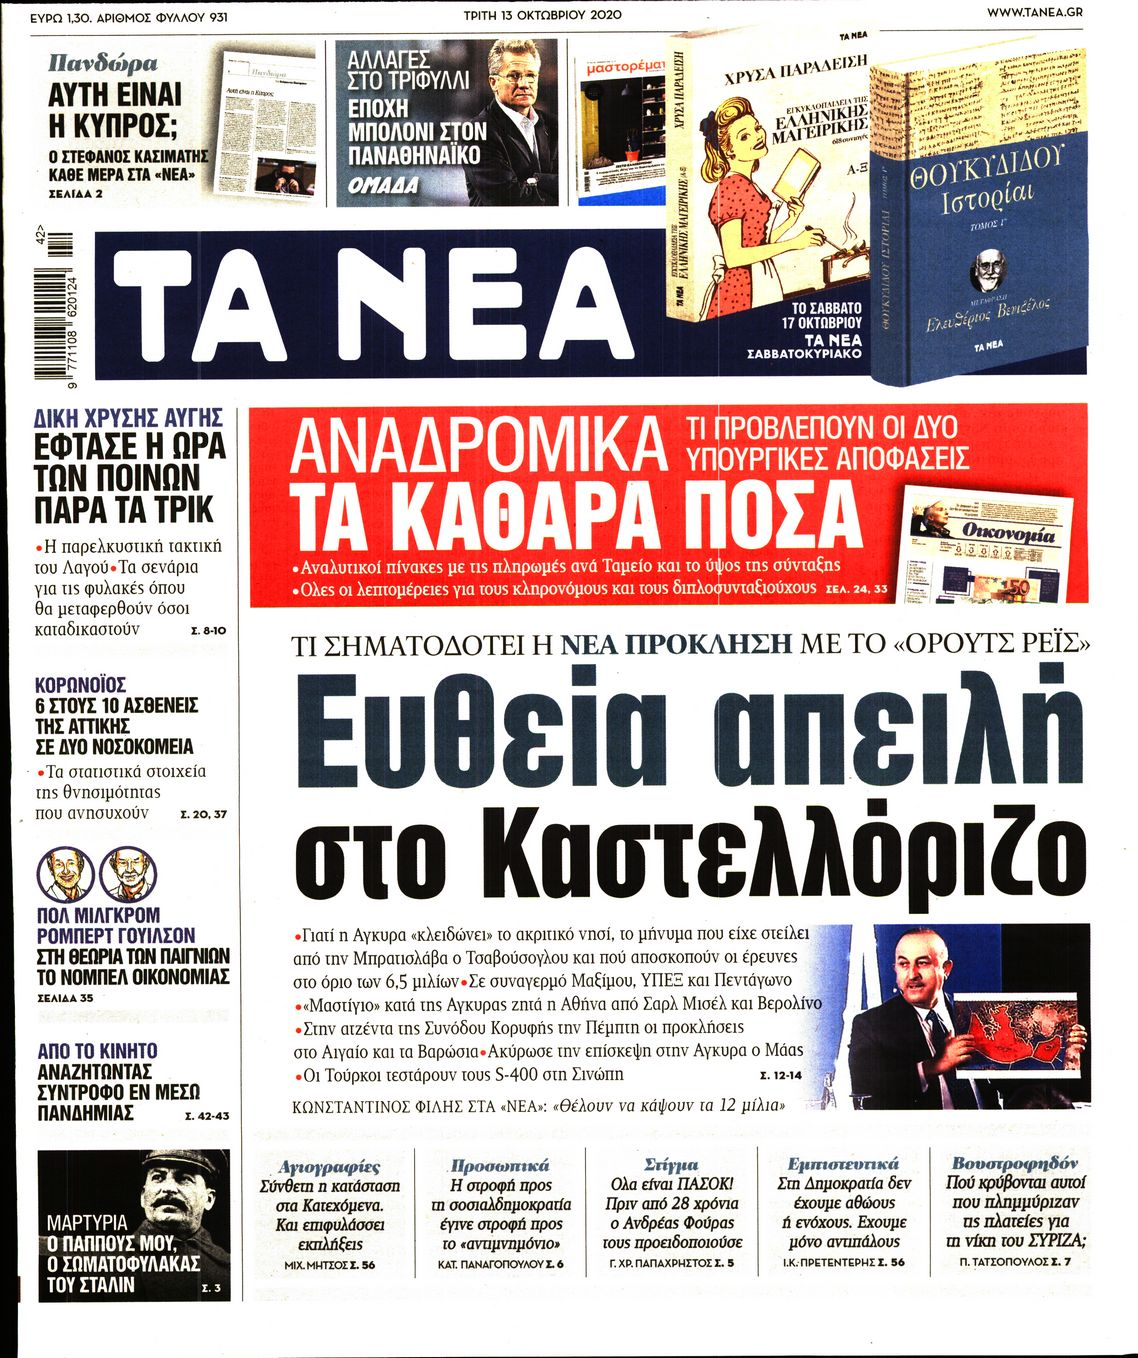 https://www.newsbeast.gr/files/1/newspapers/2020/10/13/27505878_28.jpg